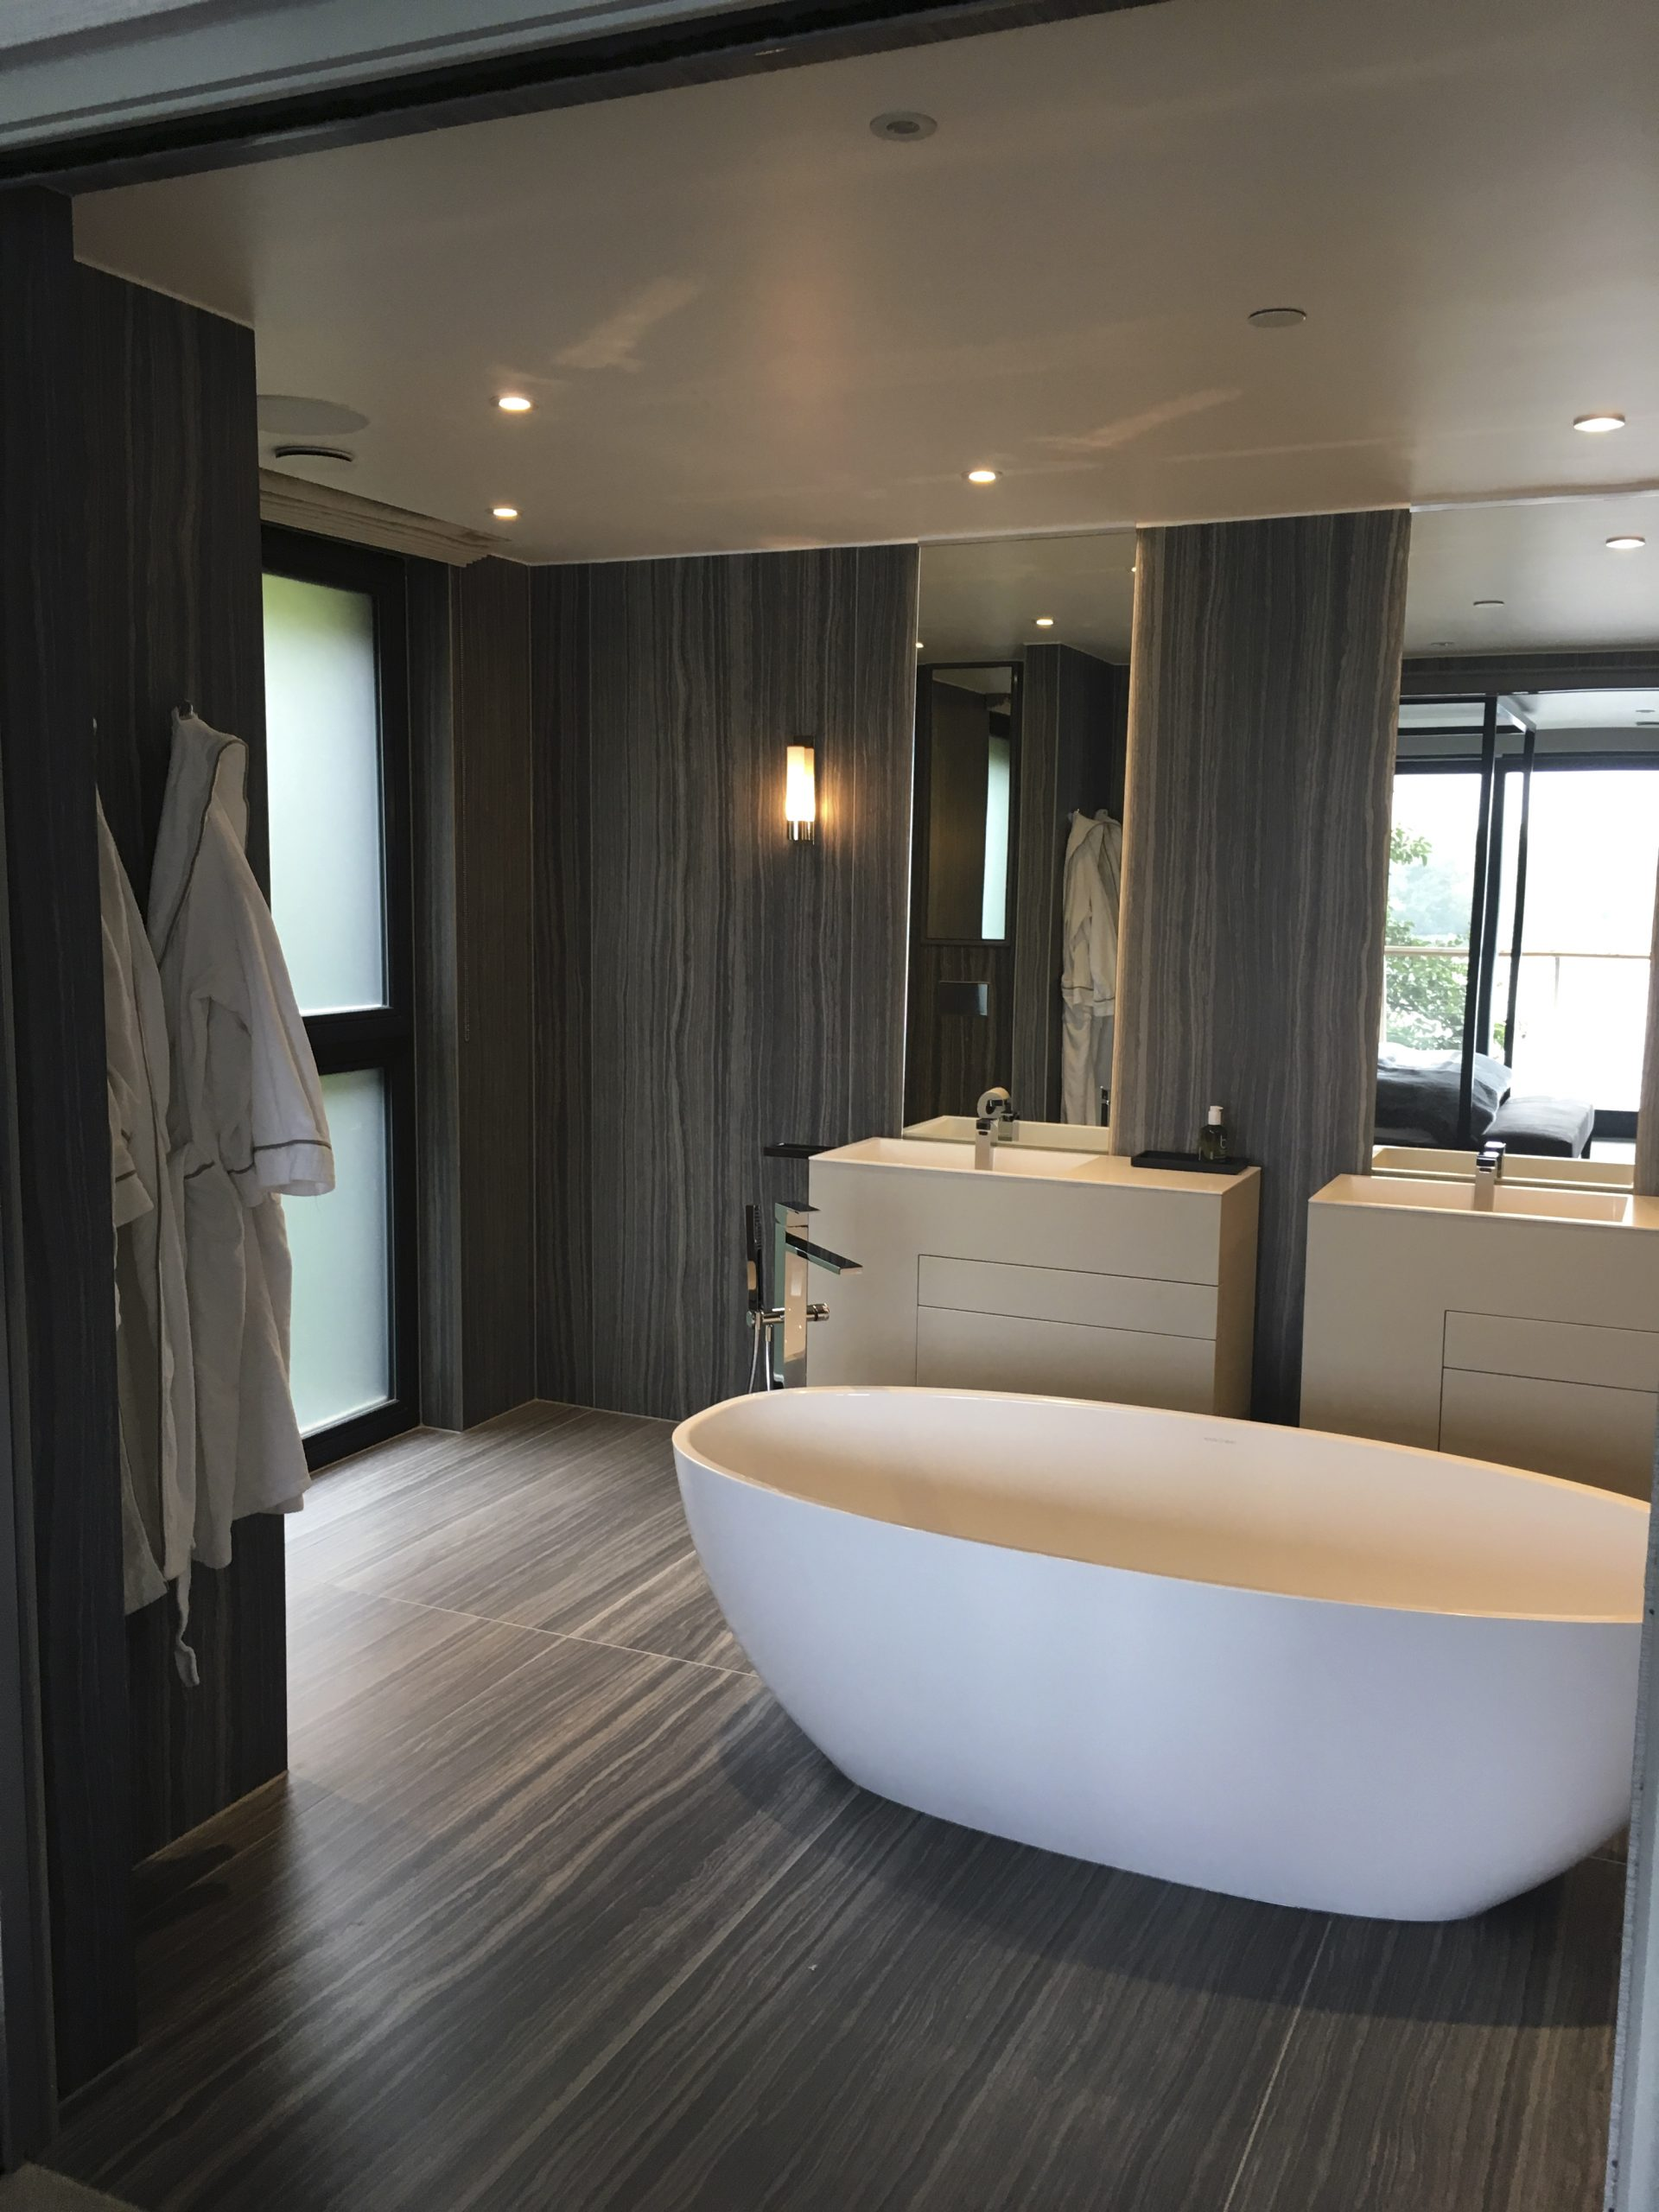 luxury accommodation cleaning services